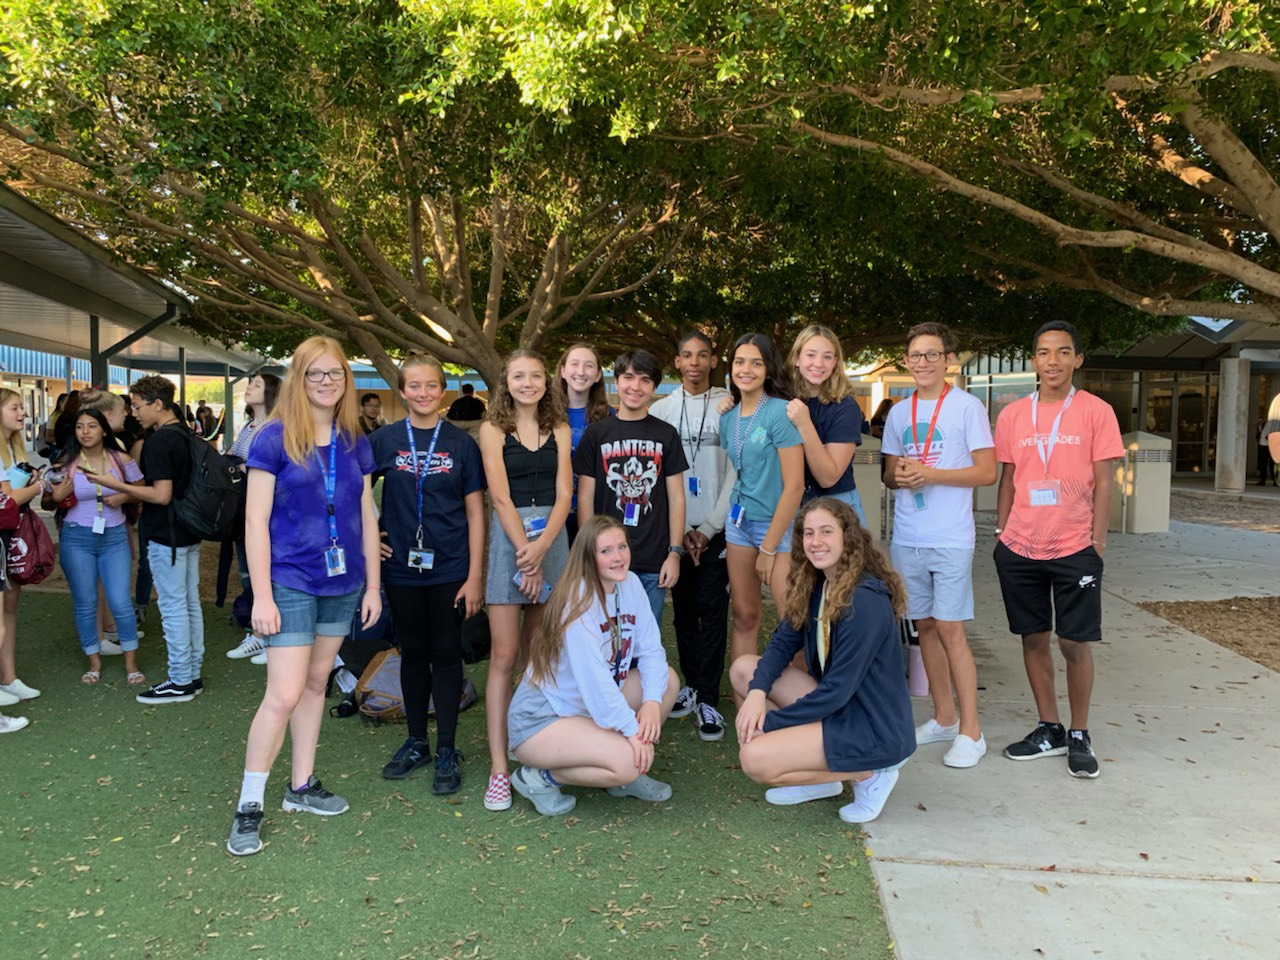 Members of McClintock High School Freshman Student Council stand on Senior Lawn.